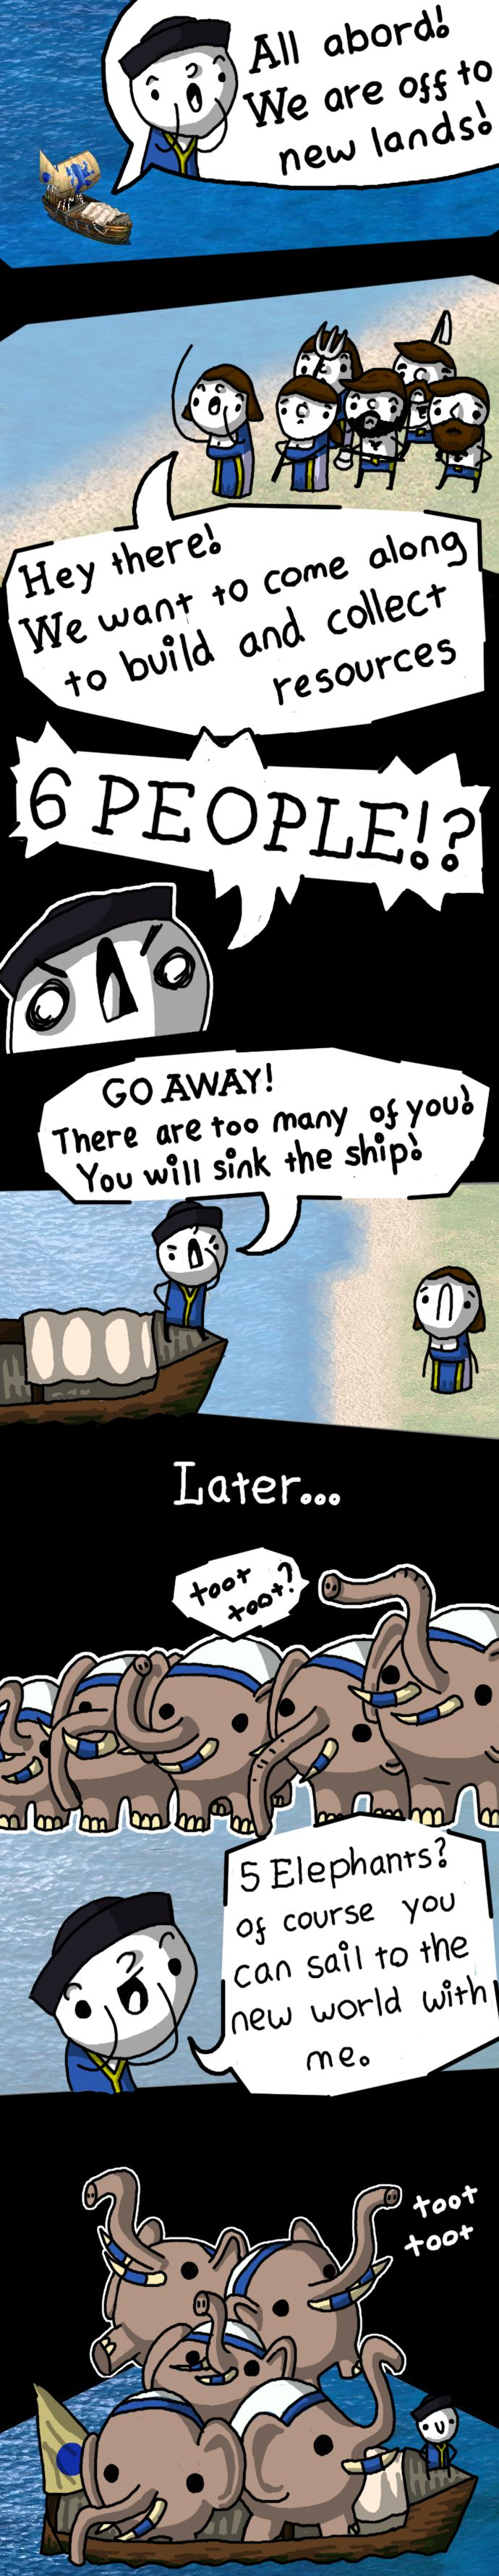 Age of Empires 2 - About Boats